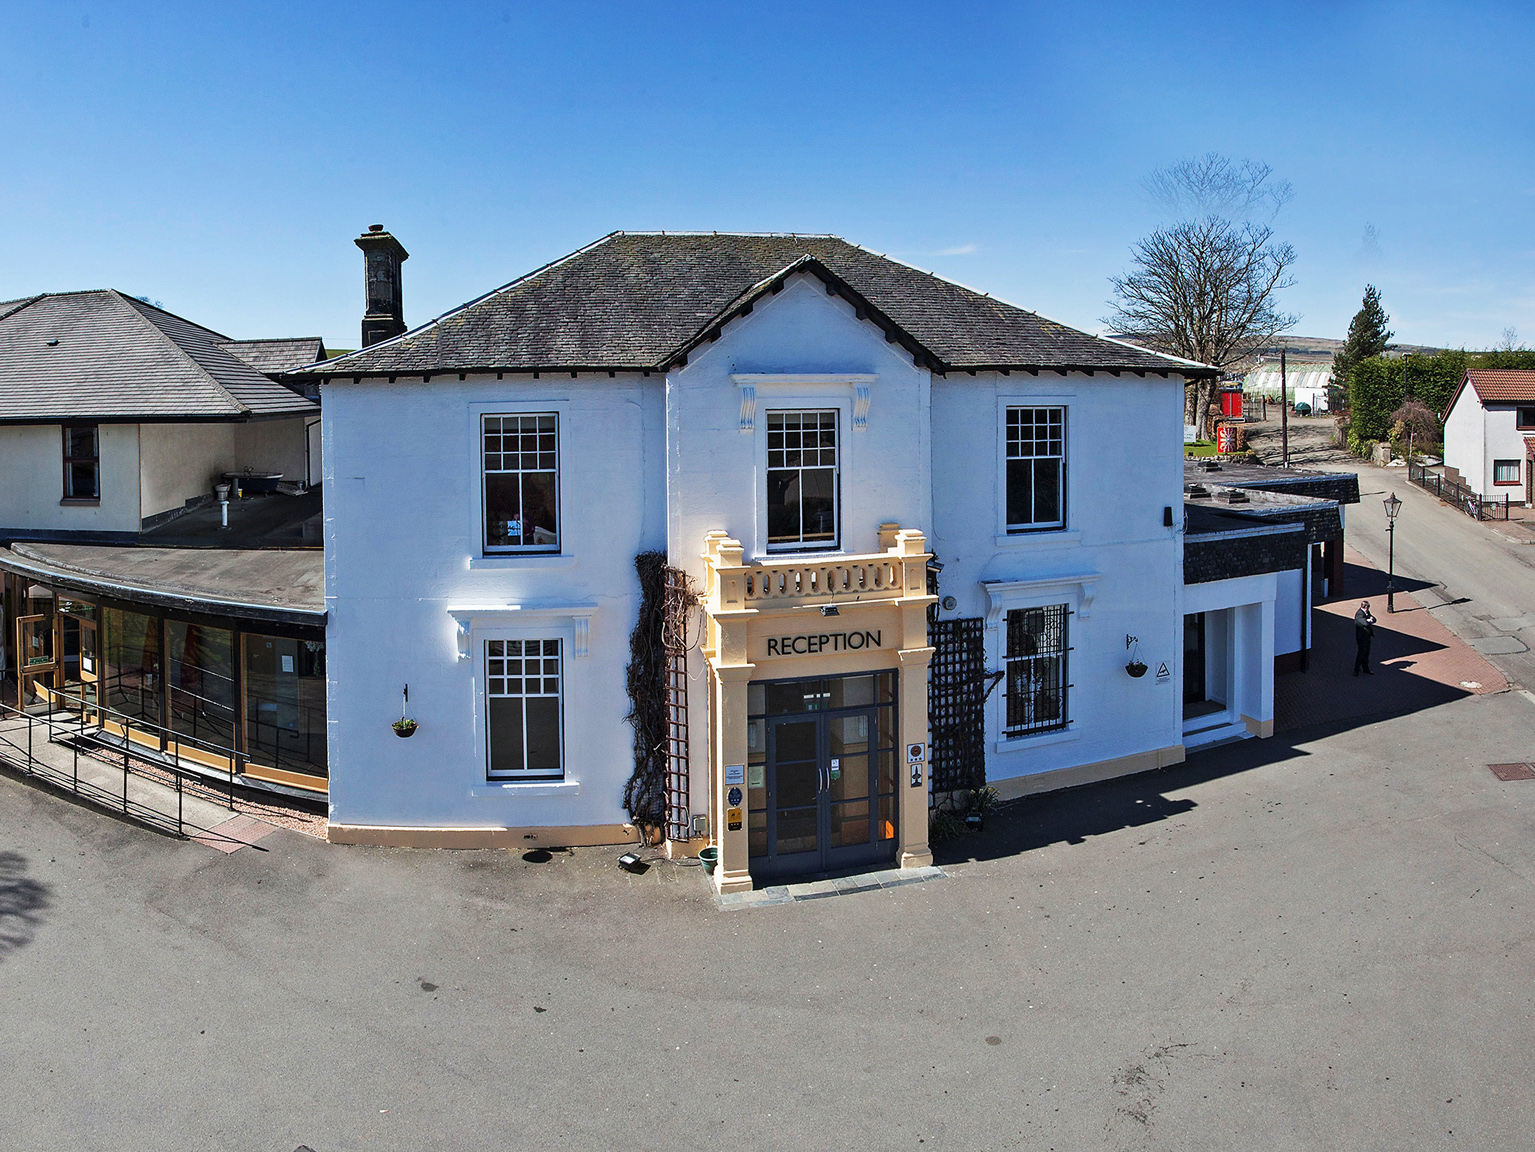 52 Bed Castlecary House Hotel On The Market After 40 Years